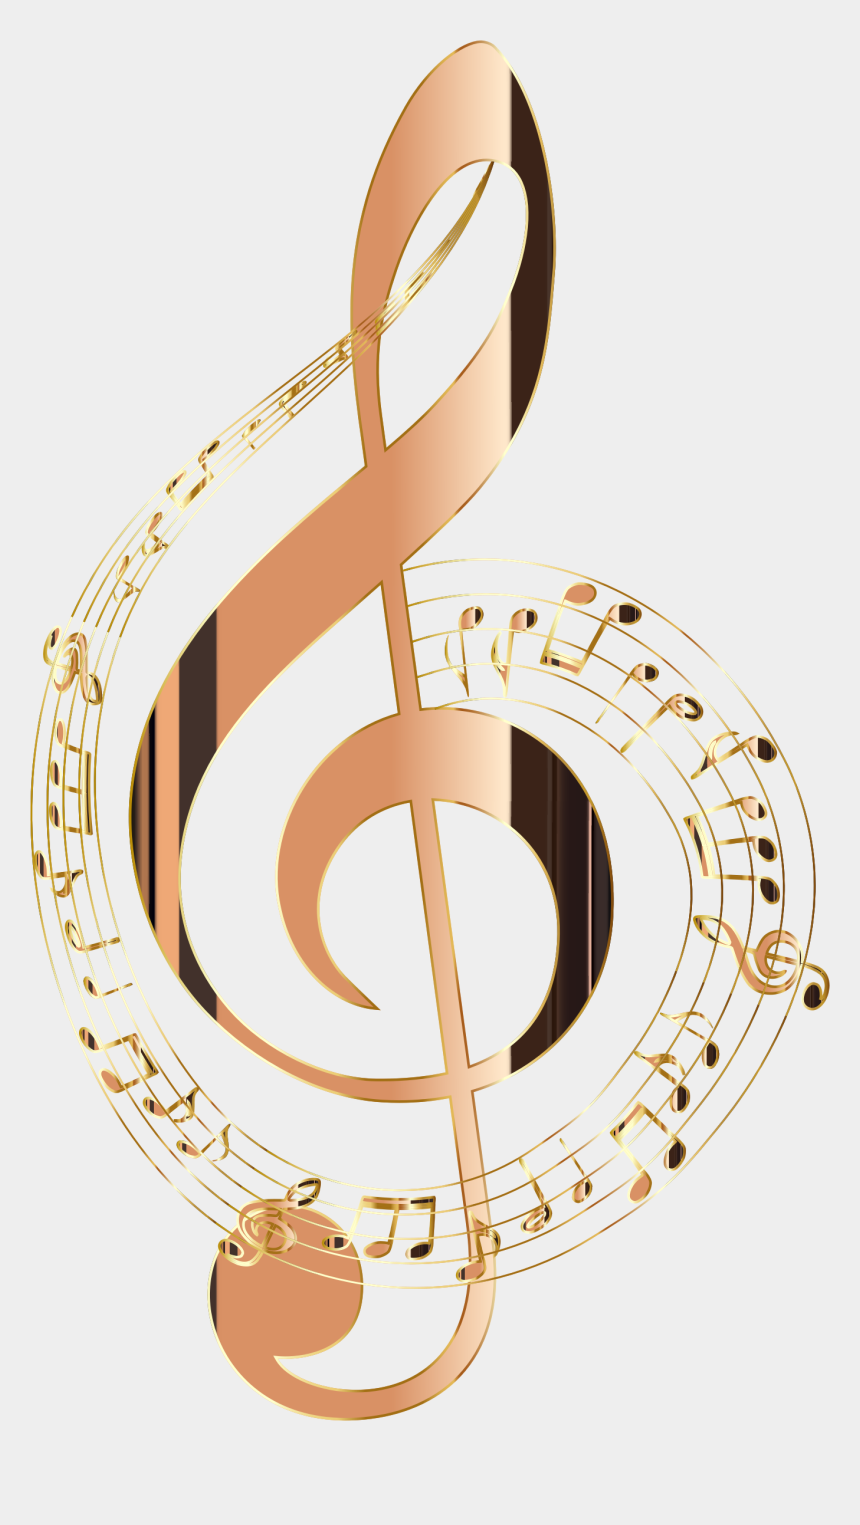 music note clipart, Cartoons - Music Notes Clipart Hearing Music - Music Notes Hd Png